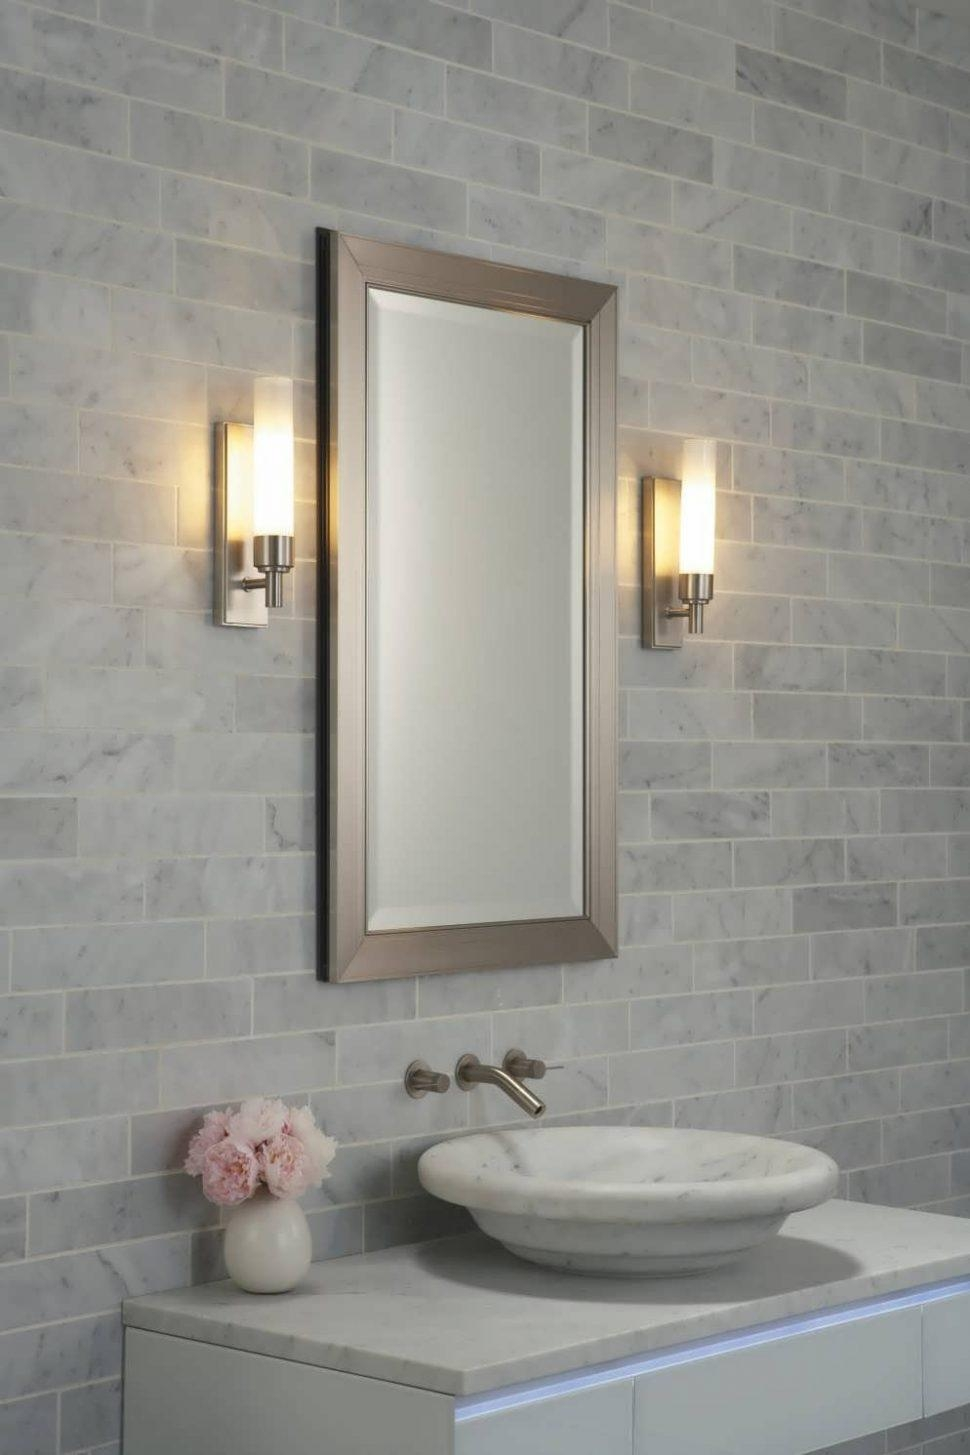 Bathroom Cabinets : Custom Beveled Mirror Commercial Bathroom Throughout Custom Bathroom Mirrors (Image 6 of 20)